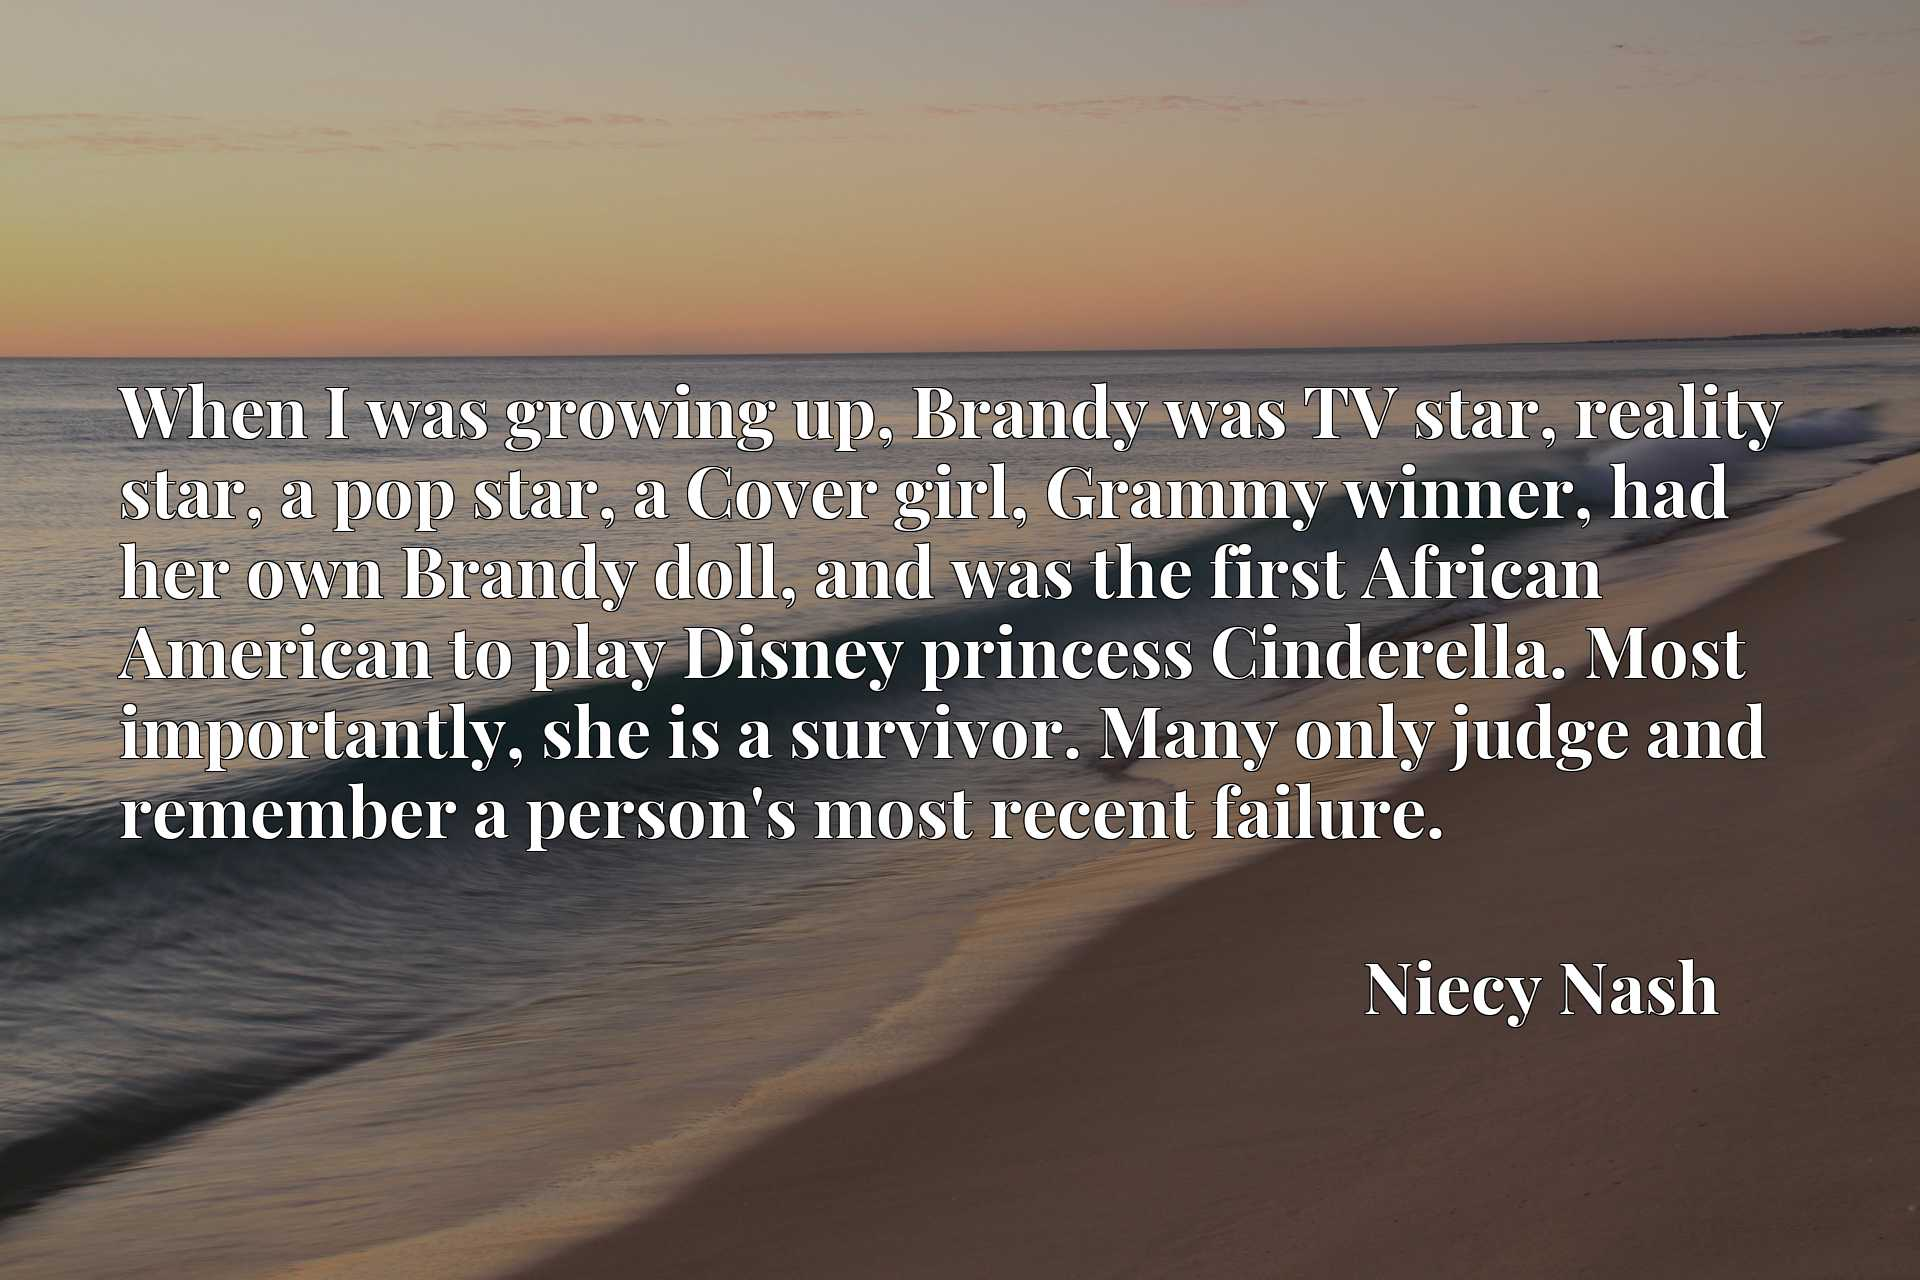 When I was growing up, Brandy was TV star, reality star, a pop star, a Cover girl, Grammy winner, had her own Brandy doll, and was the first African American to play Disney princess Cinderella. Most importantly, she is a survivor. Many only judge and remember a person's most recent failure.